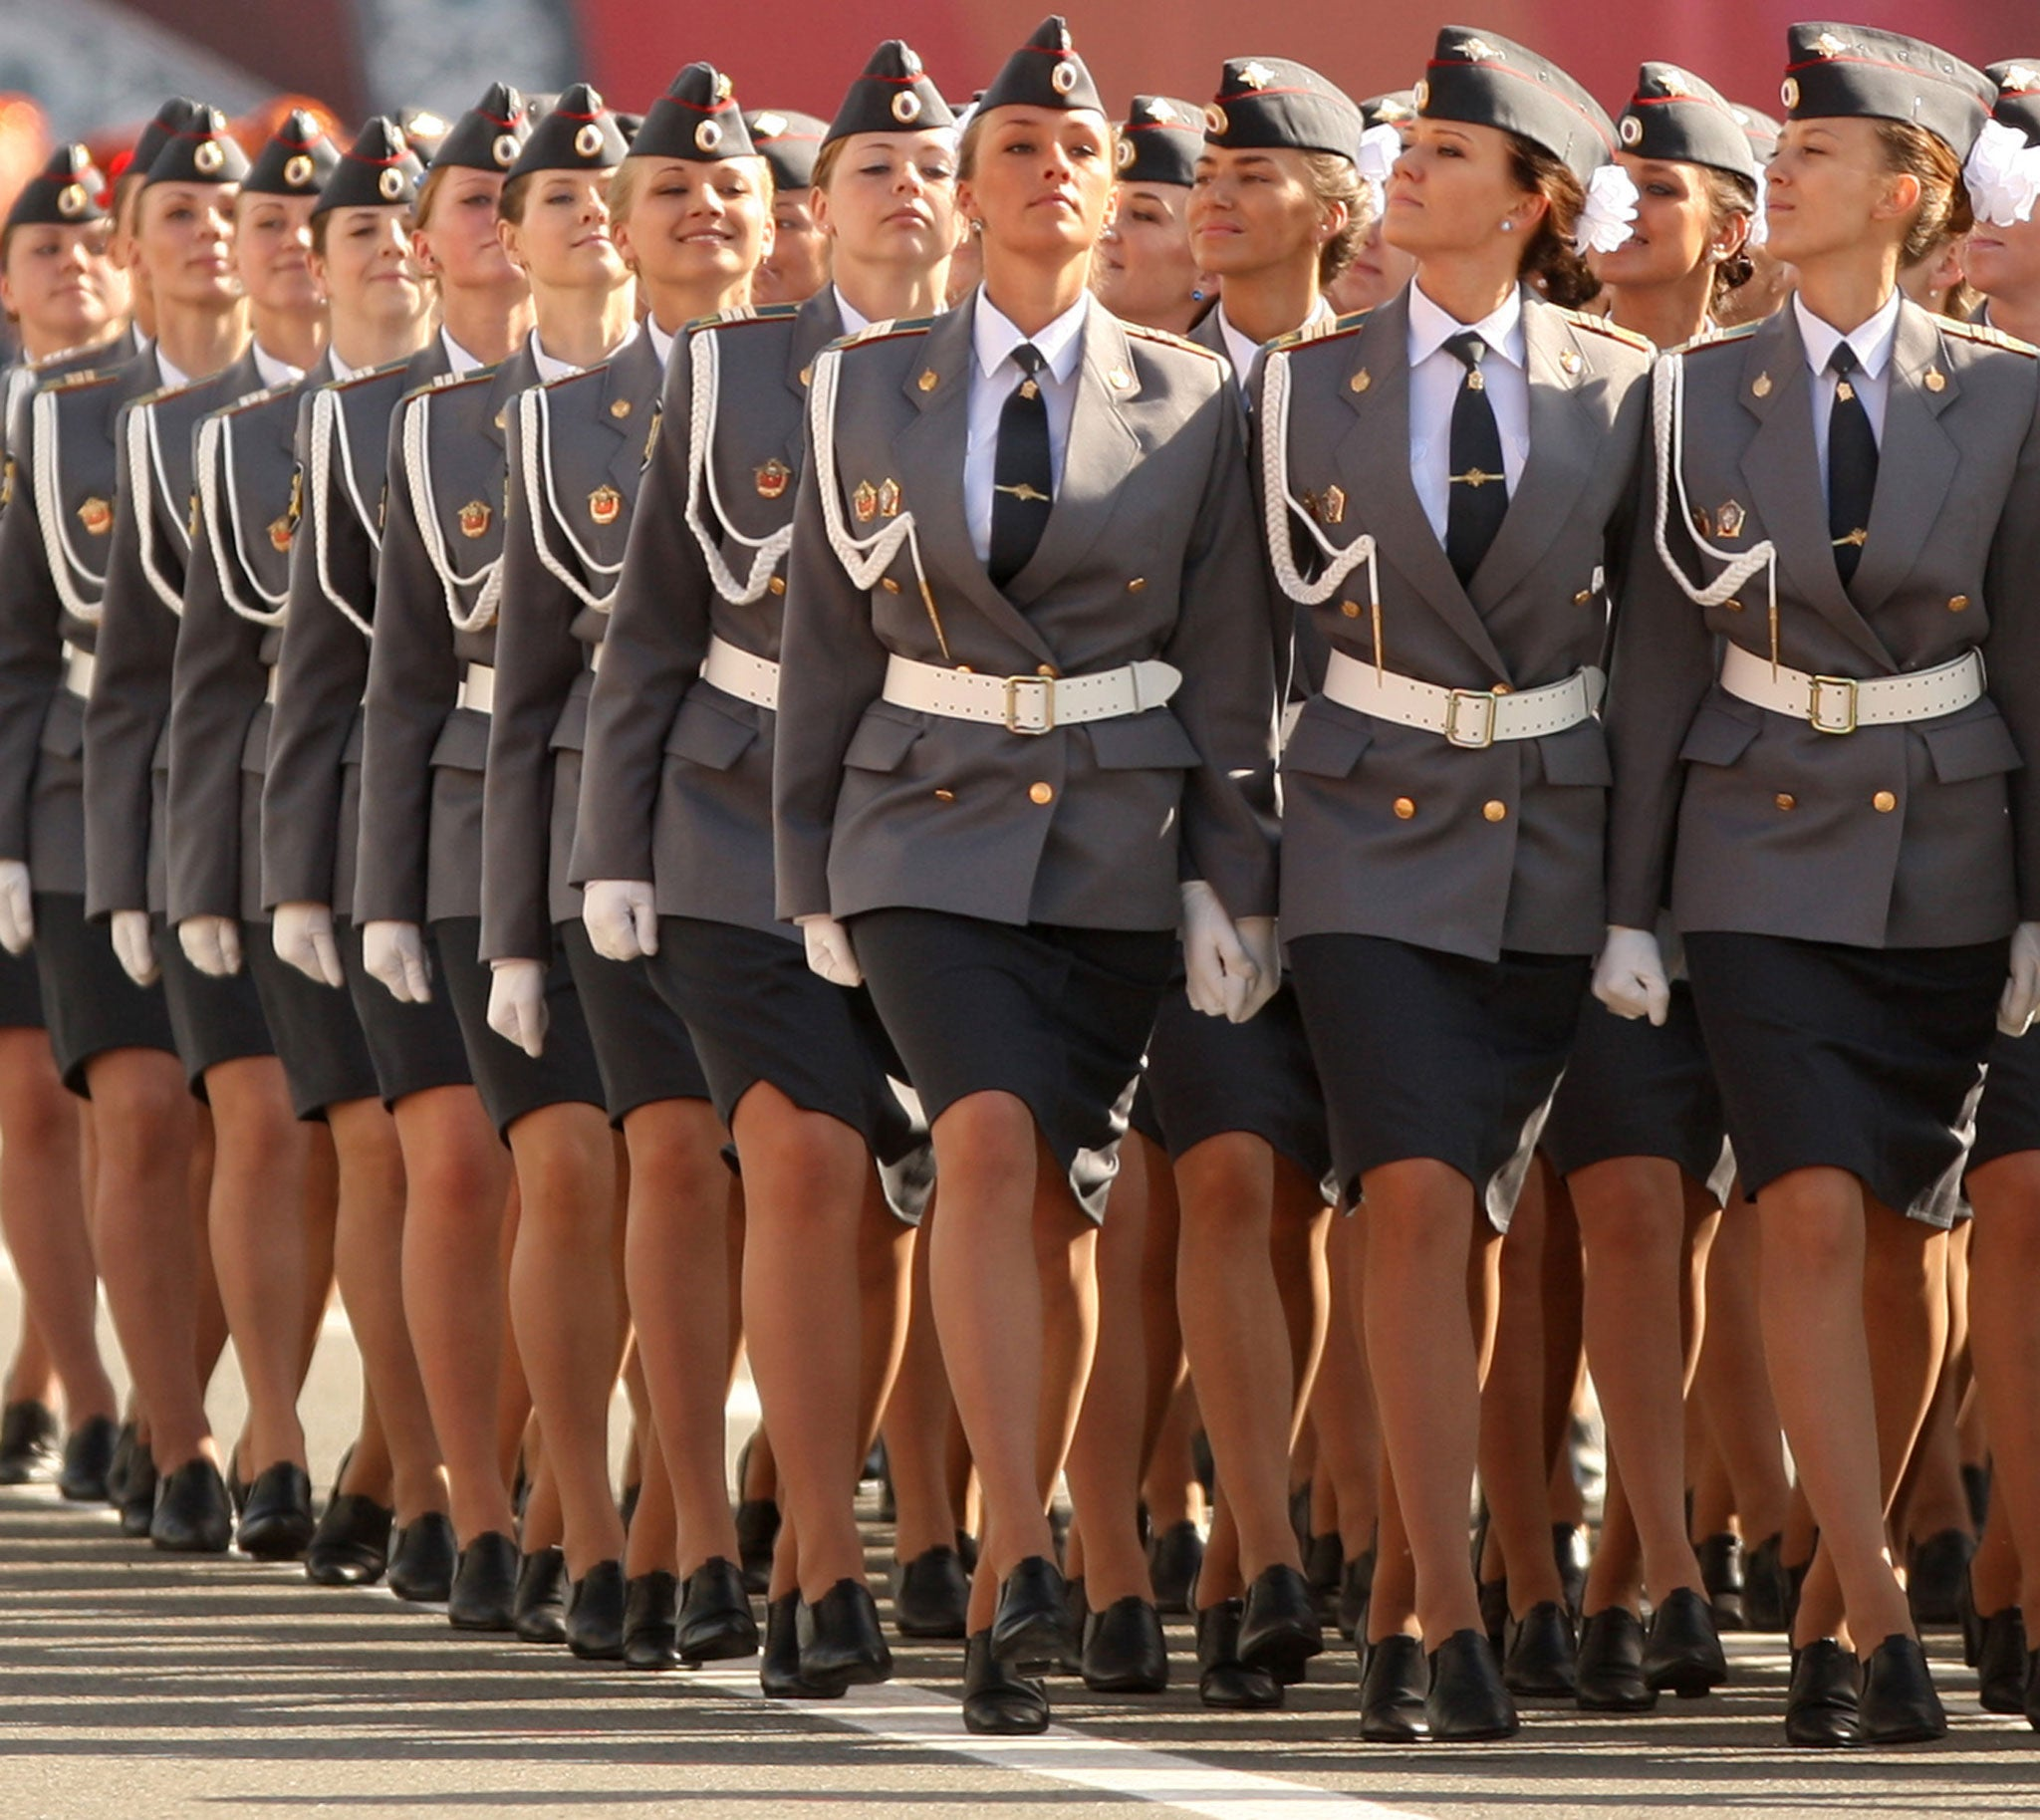 Are mistaken. Russian girl police outfit not